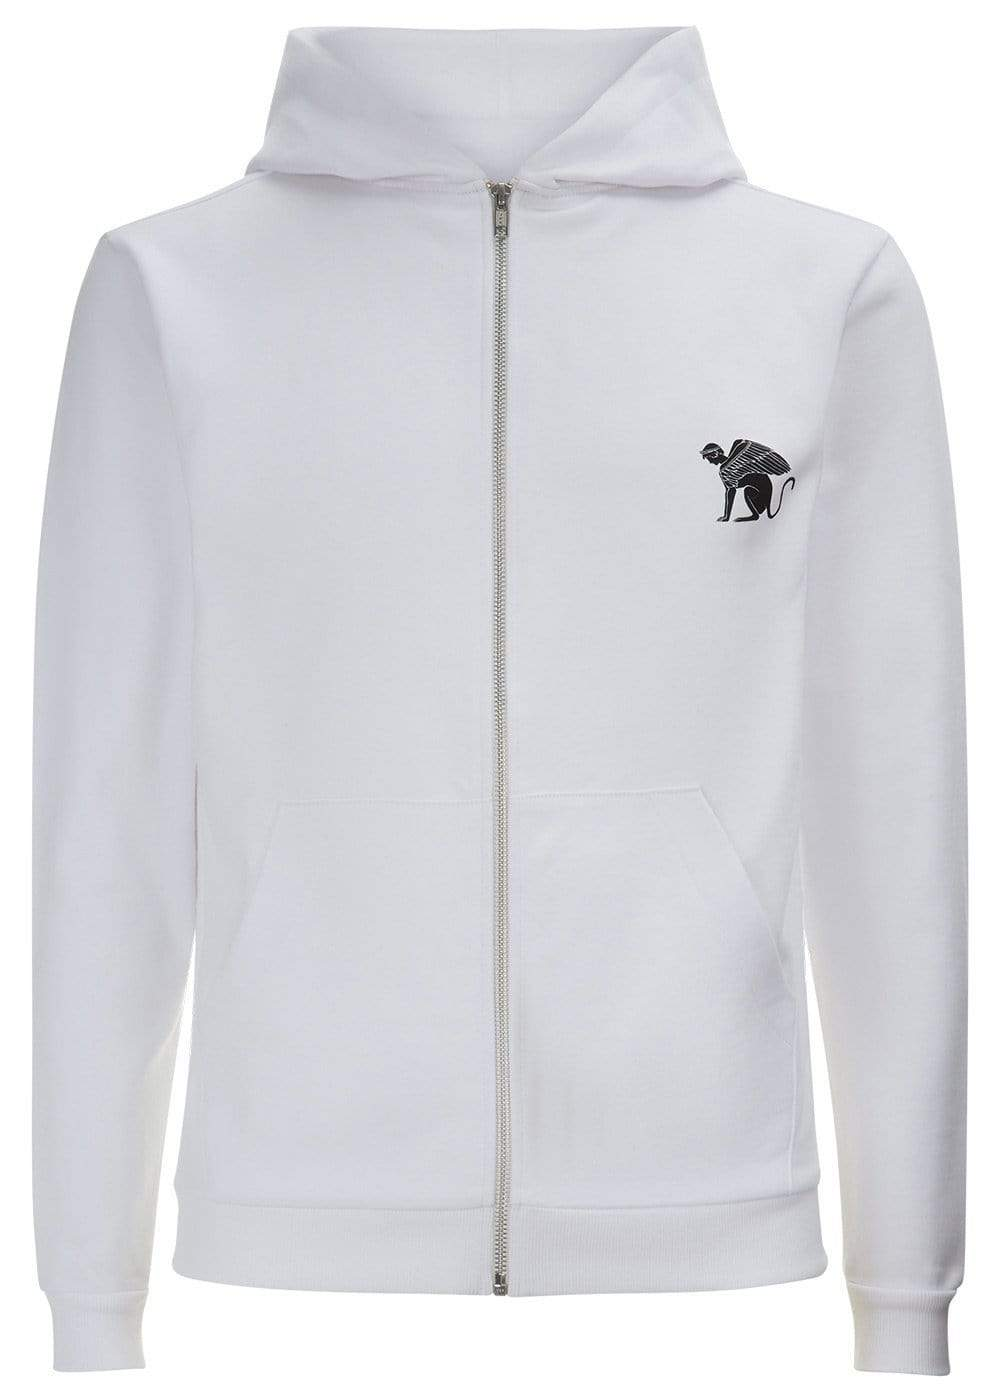 Teenzshop  Boys White Zip-Up Toro Hoodie